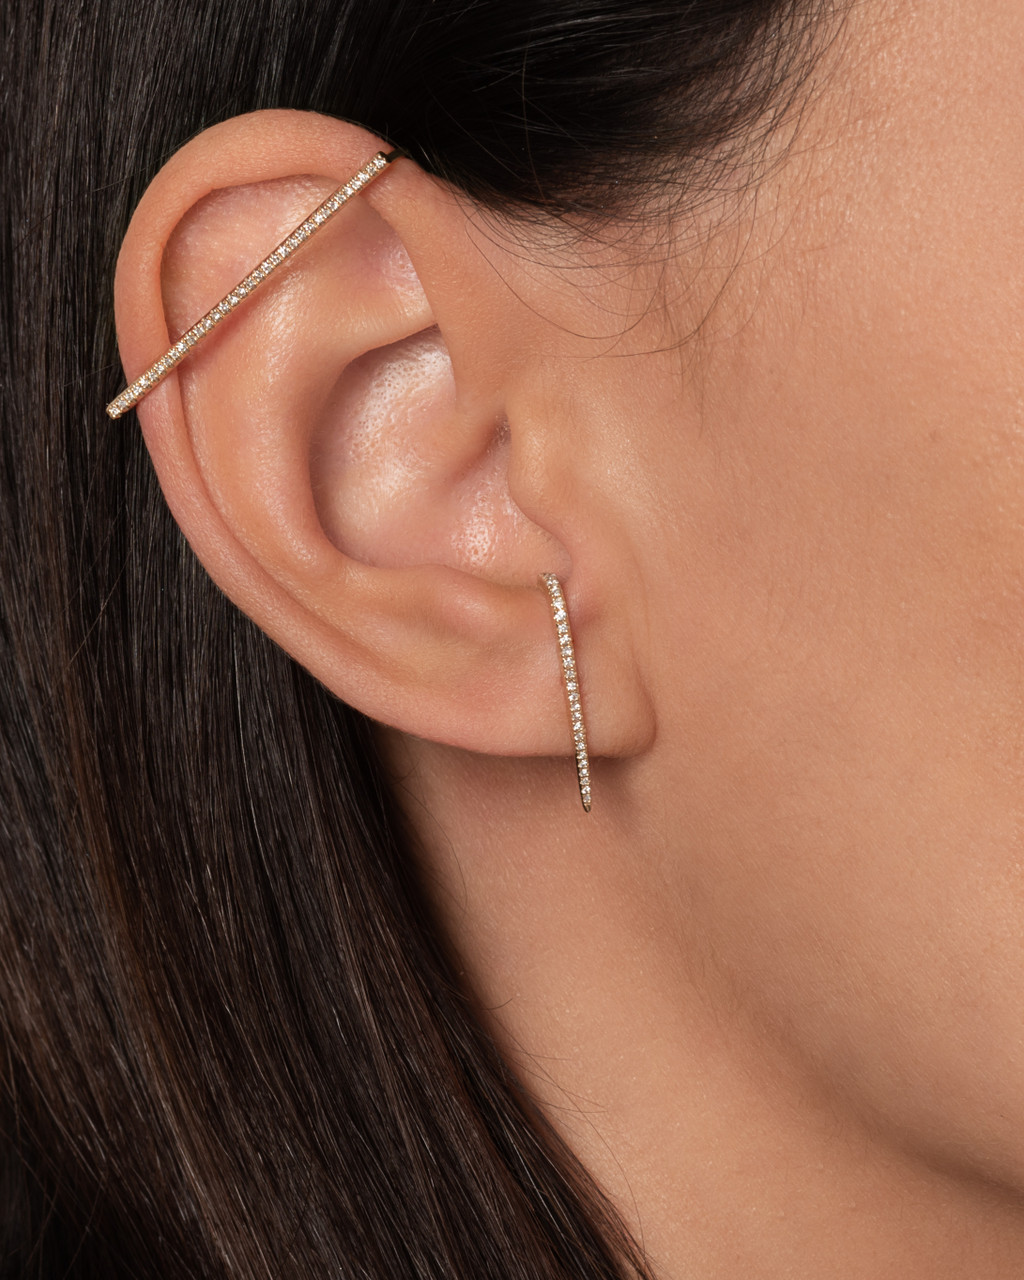 Diamond Cartilage Ear Cuff - Out of Stock